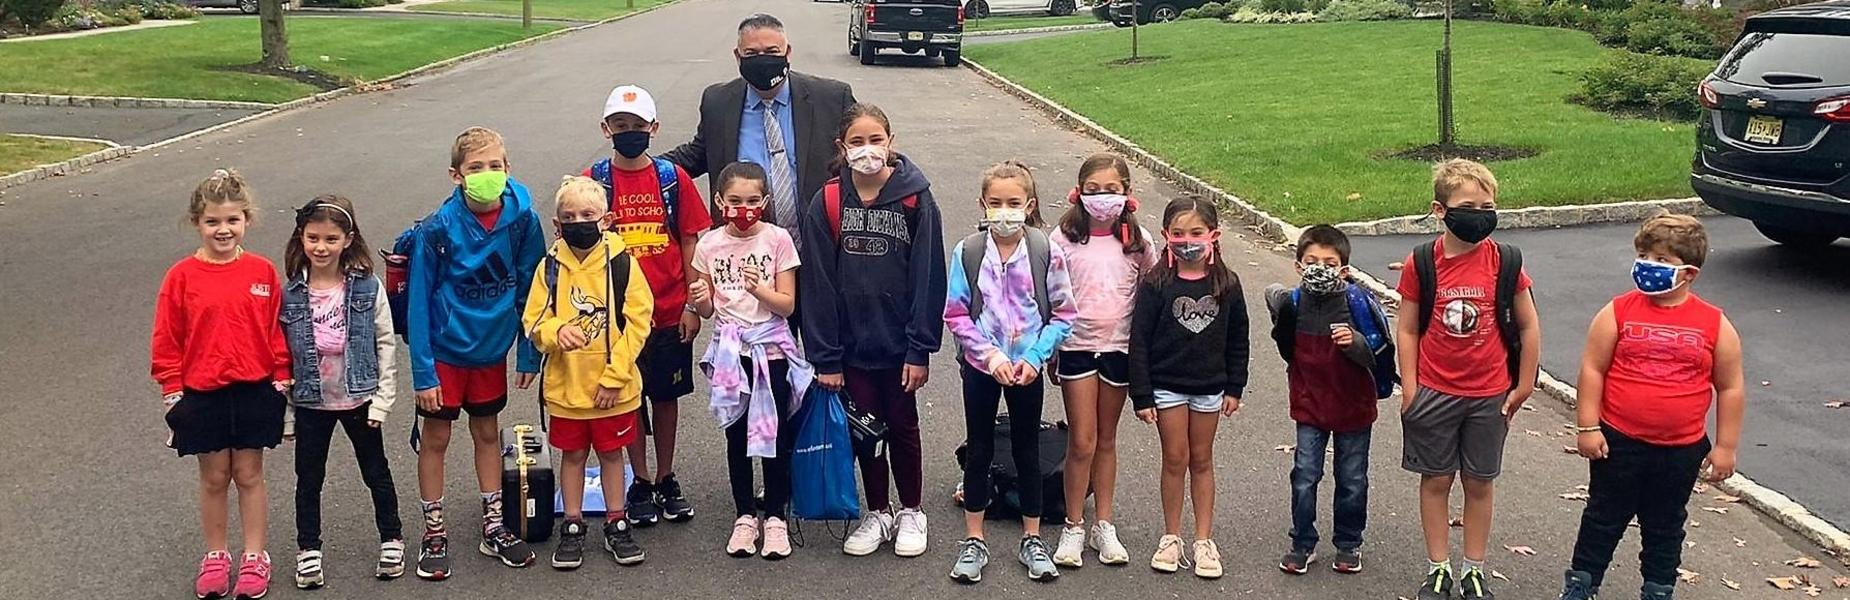 Photo of superintendent posing with students on Walk to School Day